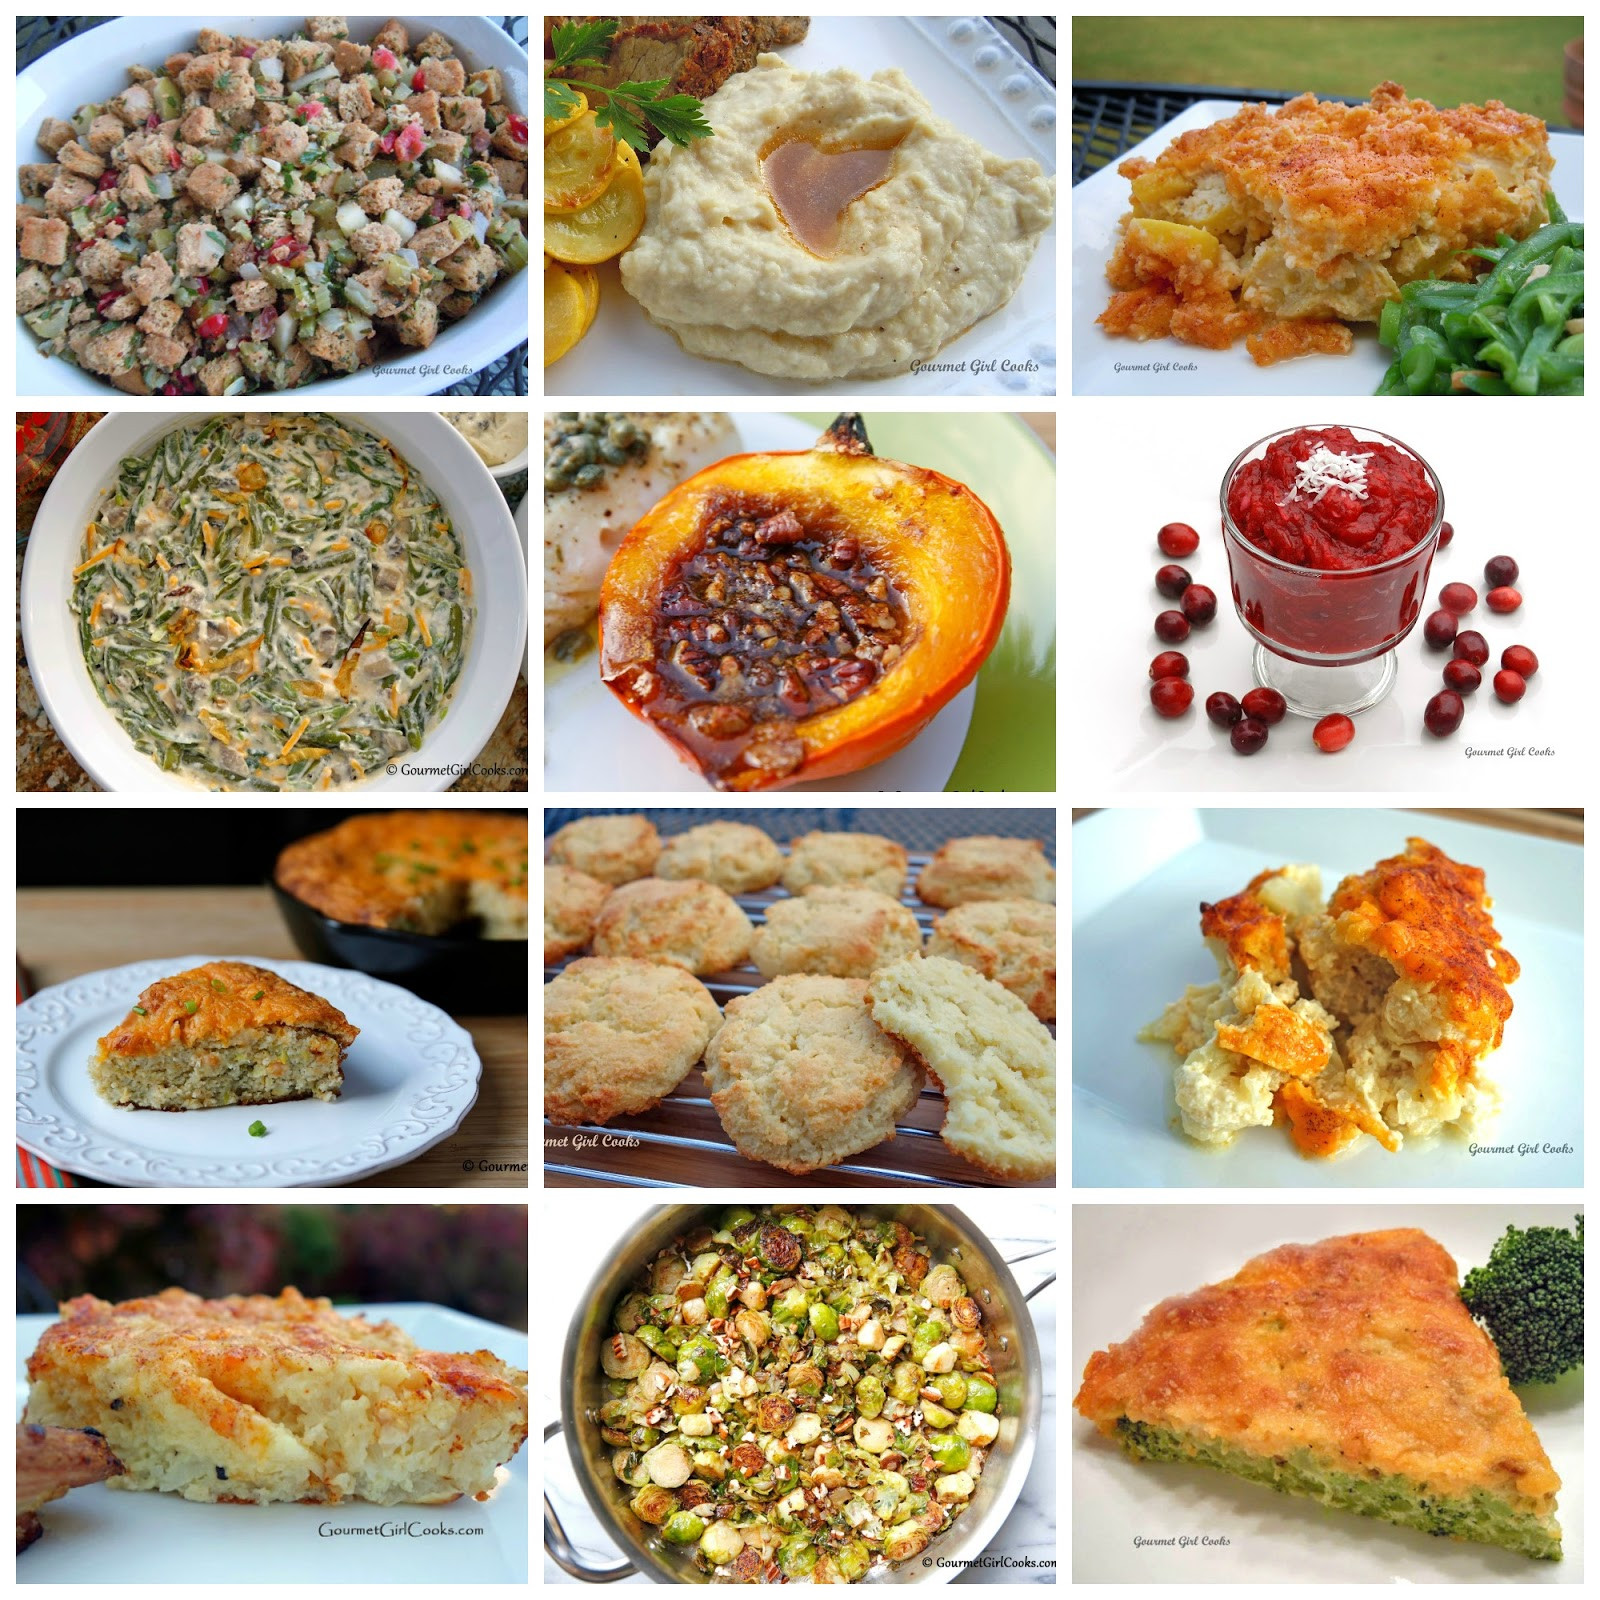 Thanksgiving Side Dishes Ideas  Gourmet Girl Cooks 12 Thanksgiving Side Dish Recipes